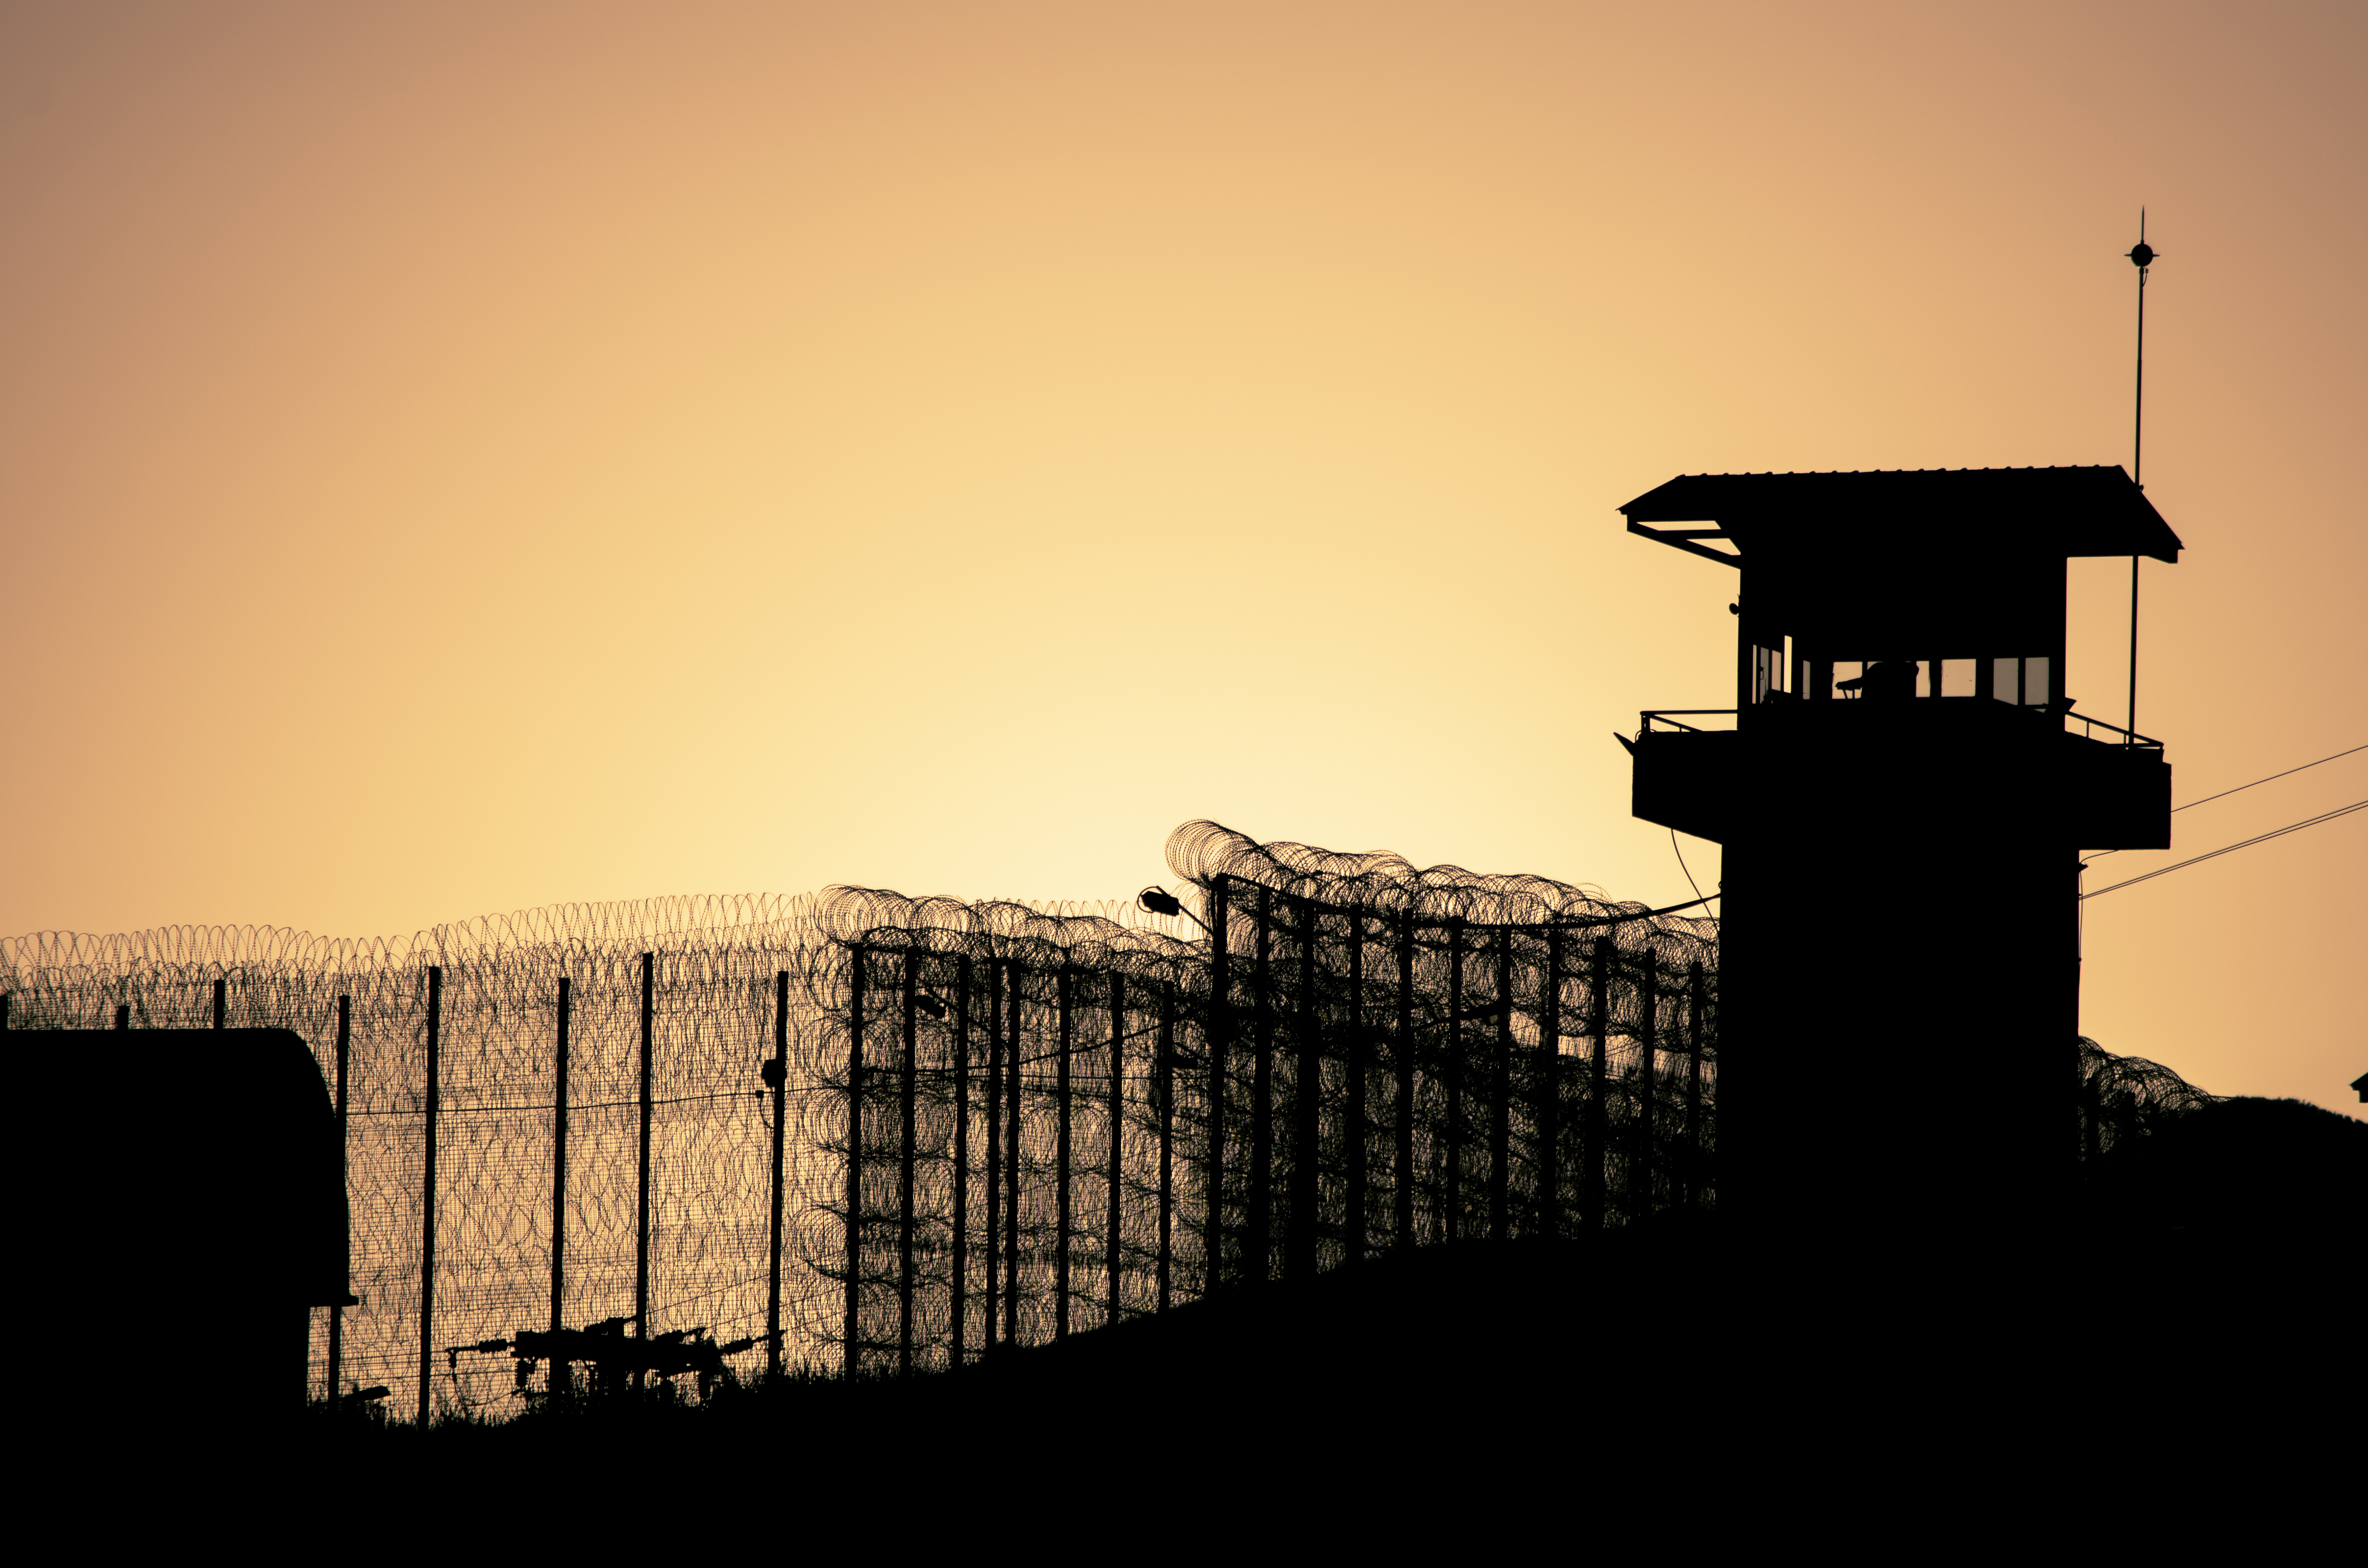 Silhouette of barbed wires and watchtower of prison in Neapolis, Crete, at sunset. (Georgios Tsichlis/Shutterstock.com)